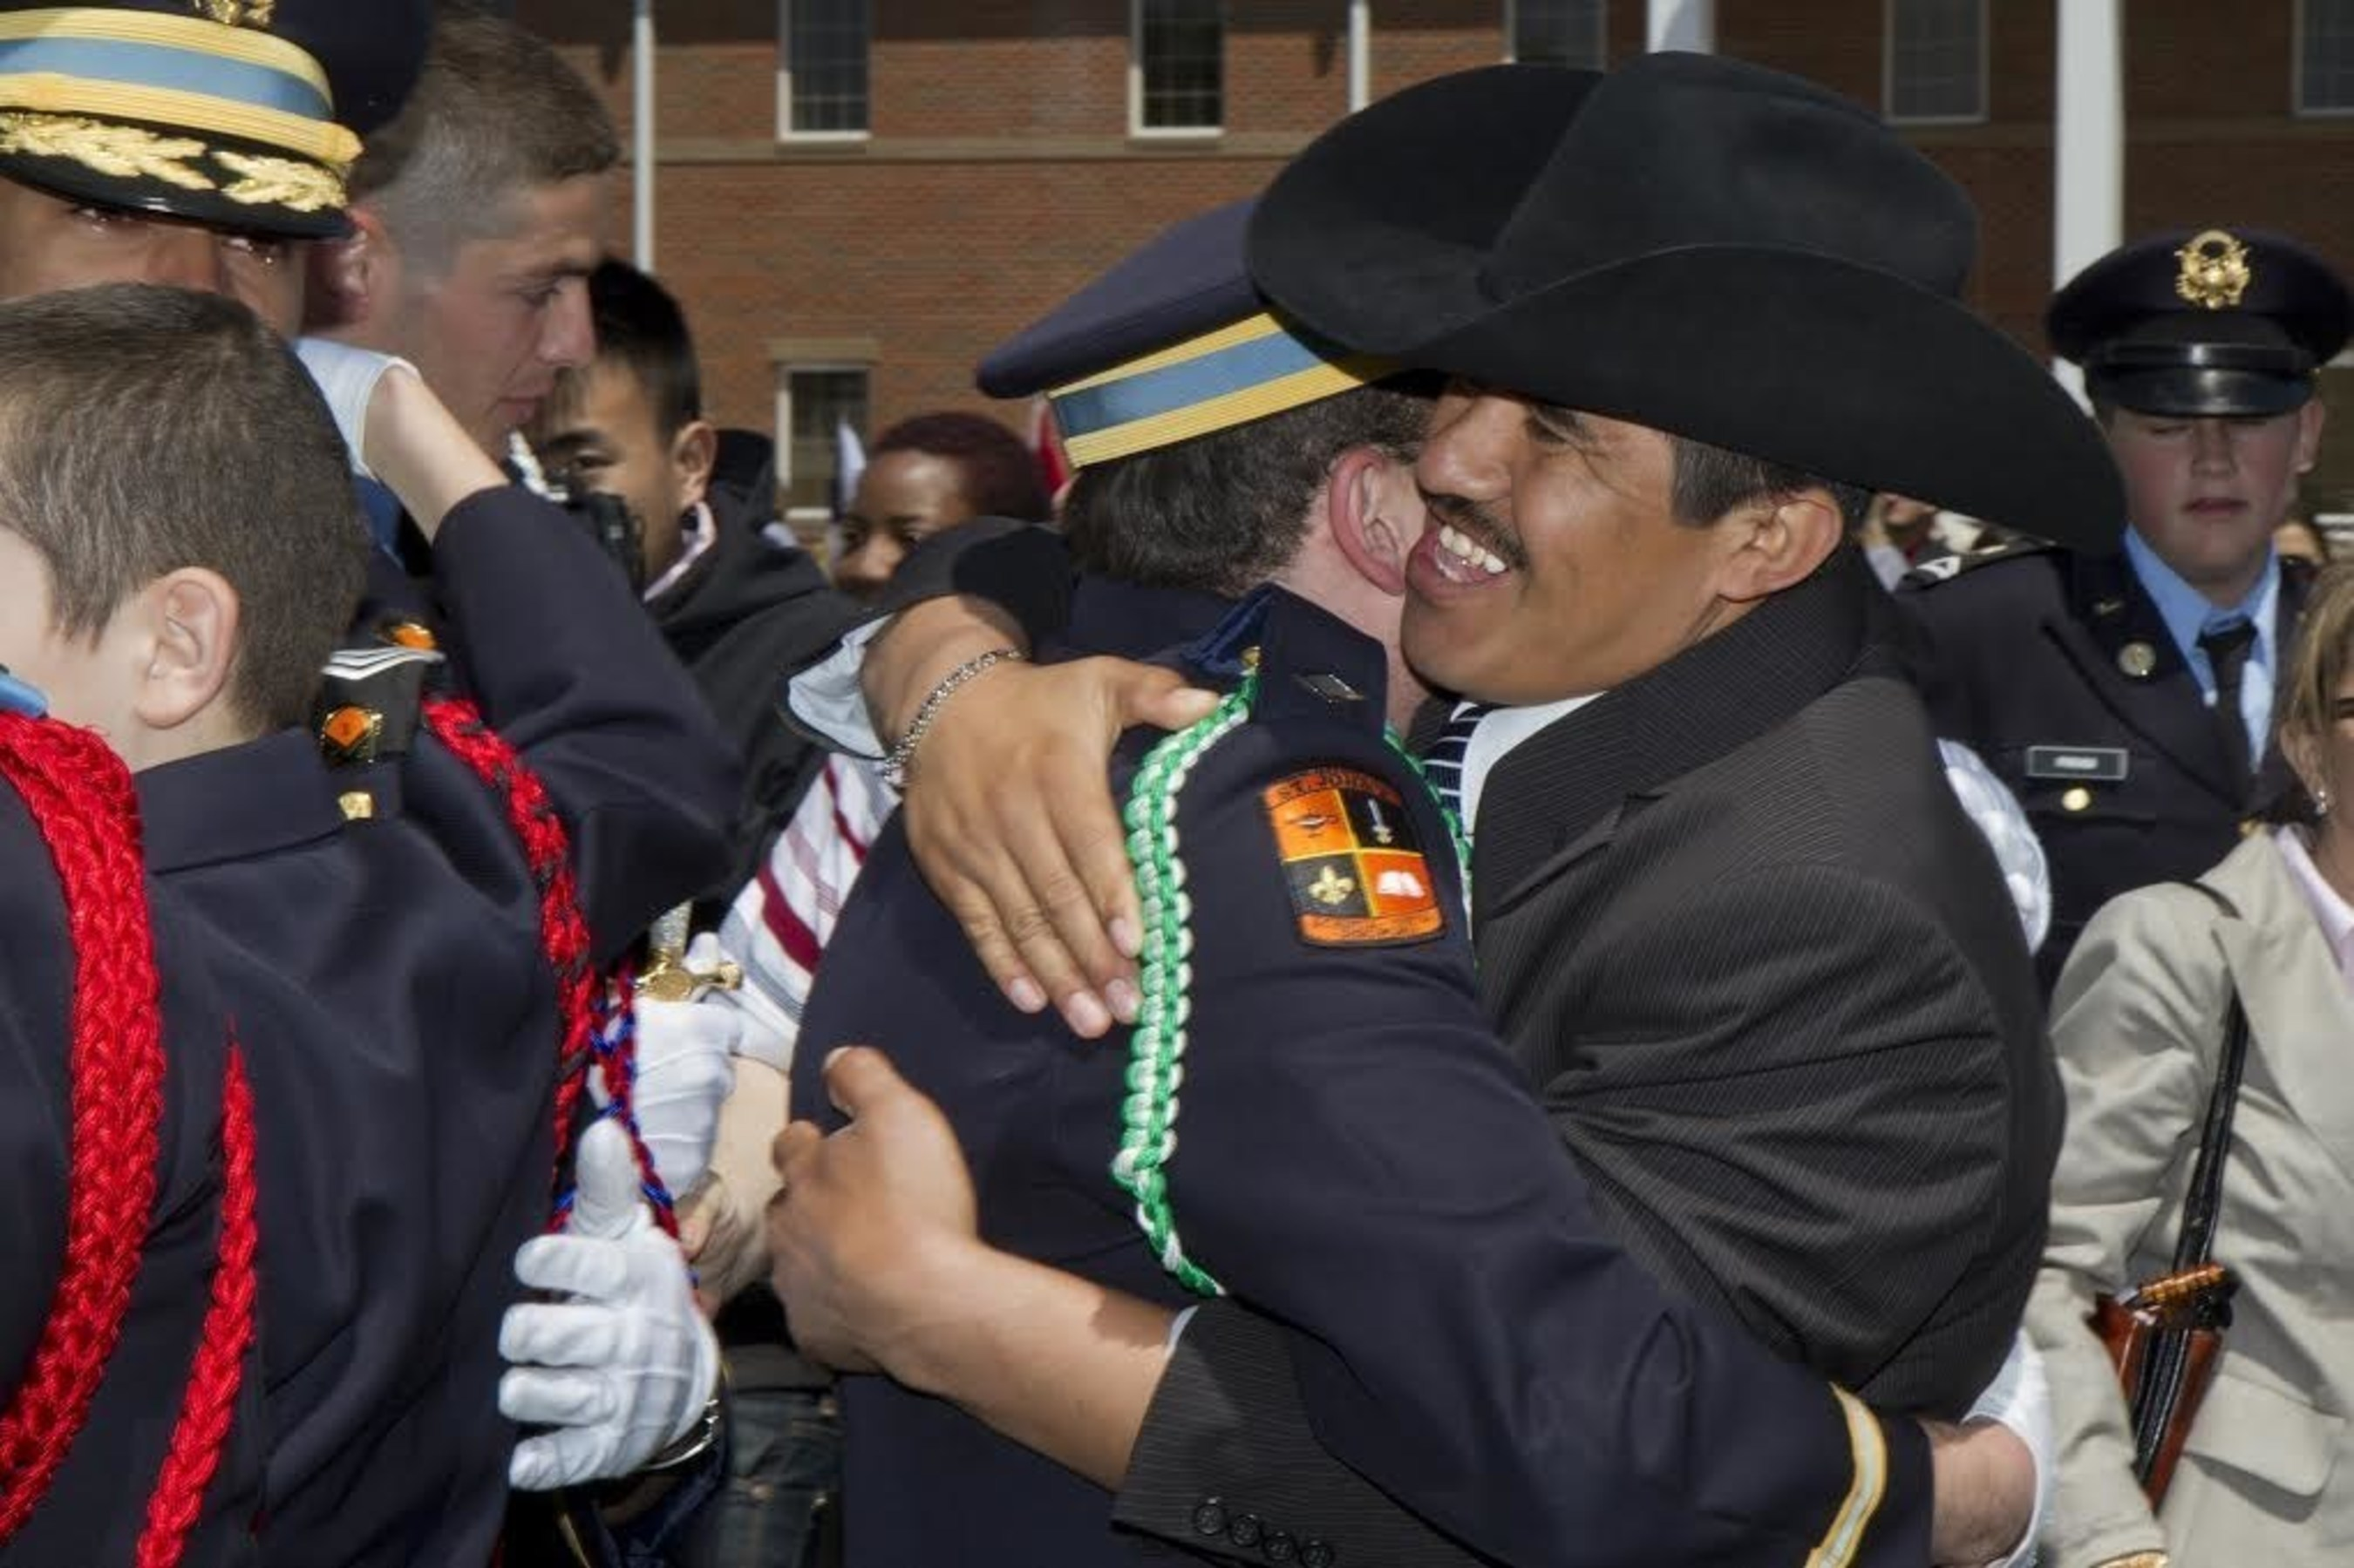 "Leo Alvarado, Spanish teacher and soccer coach at St. John's Military School in Salina, Kansas, hugs a graduate and former student at Commencement. Teachers and staff at St. John's place a strong emphasis on building relationships with cadets and their families. St. John's was recently recognized for placing a strong emphasis on engaging families in their child's education and social development as well as the school's commitment to ensuring each cadet is supported by at least one adult advocate. Many former students stay in touch with their teachers and ""St. John's Moms"" long after graduation."